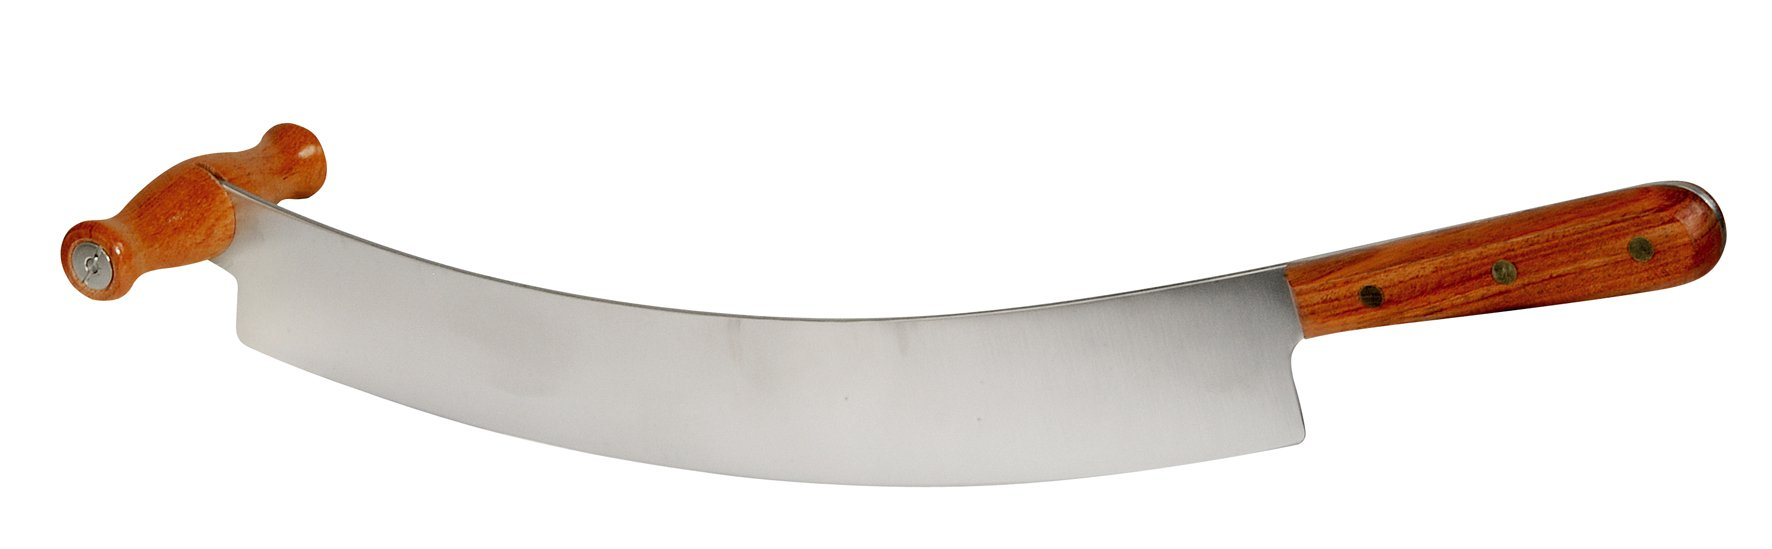 Boska Holland Professional 10438 Professional Series Cheese Knife 380mm Brown